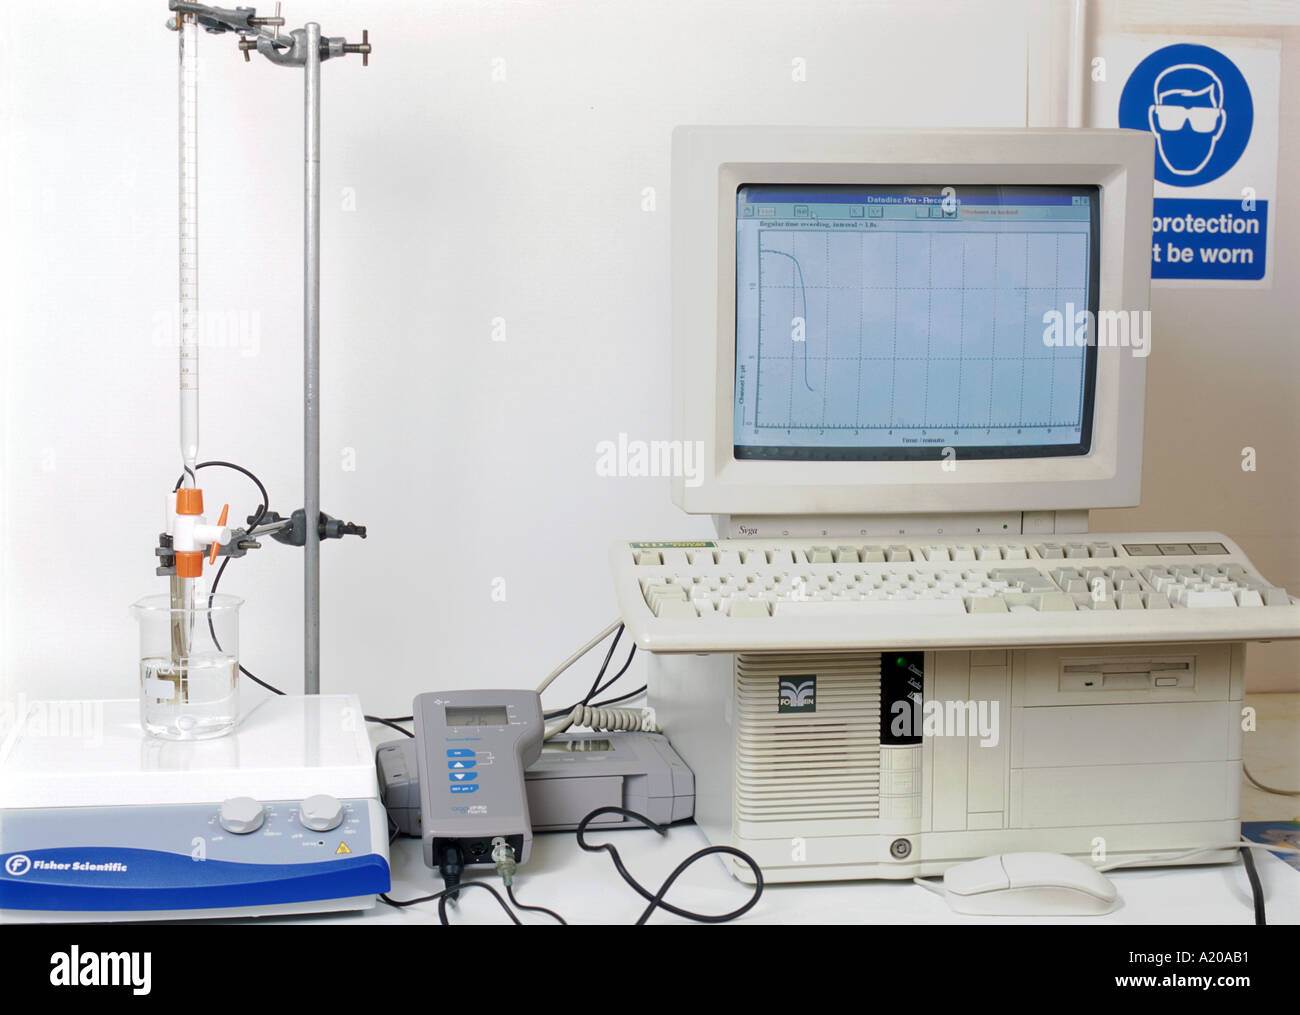 pH meter and data logger connected to a computer screen shows pH - Stock Image